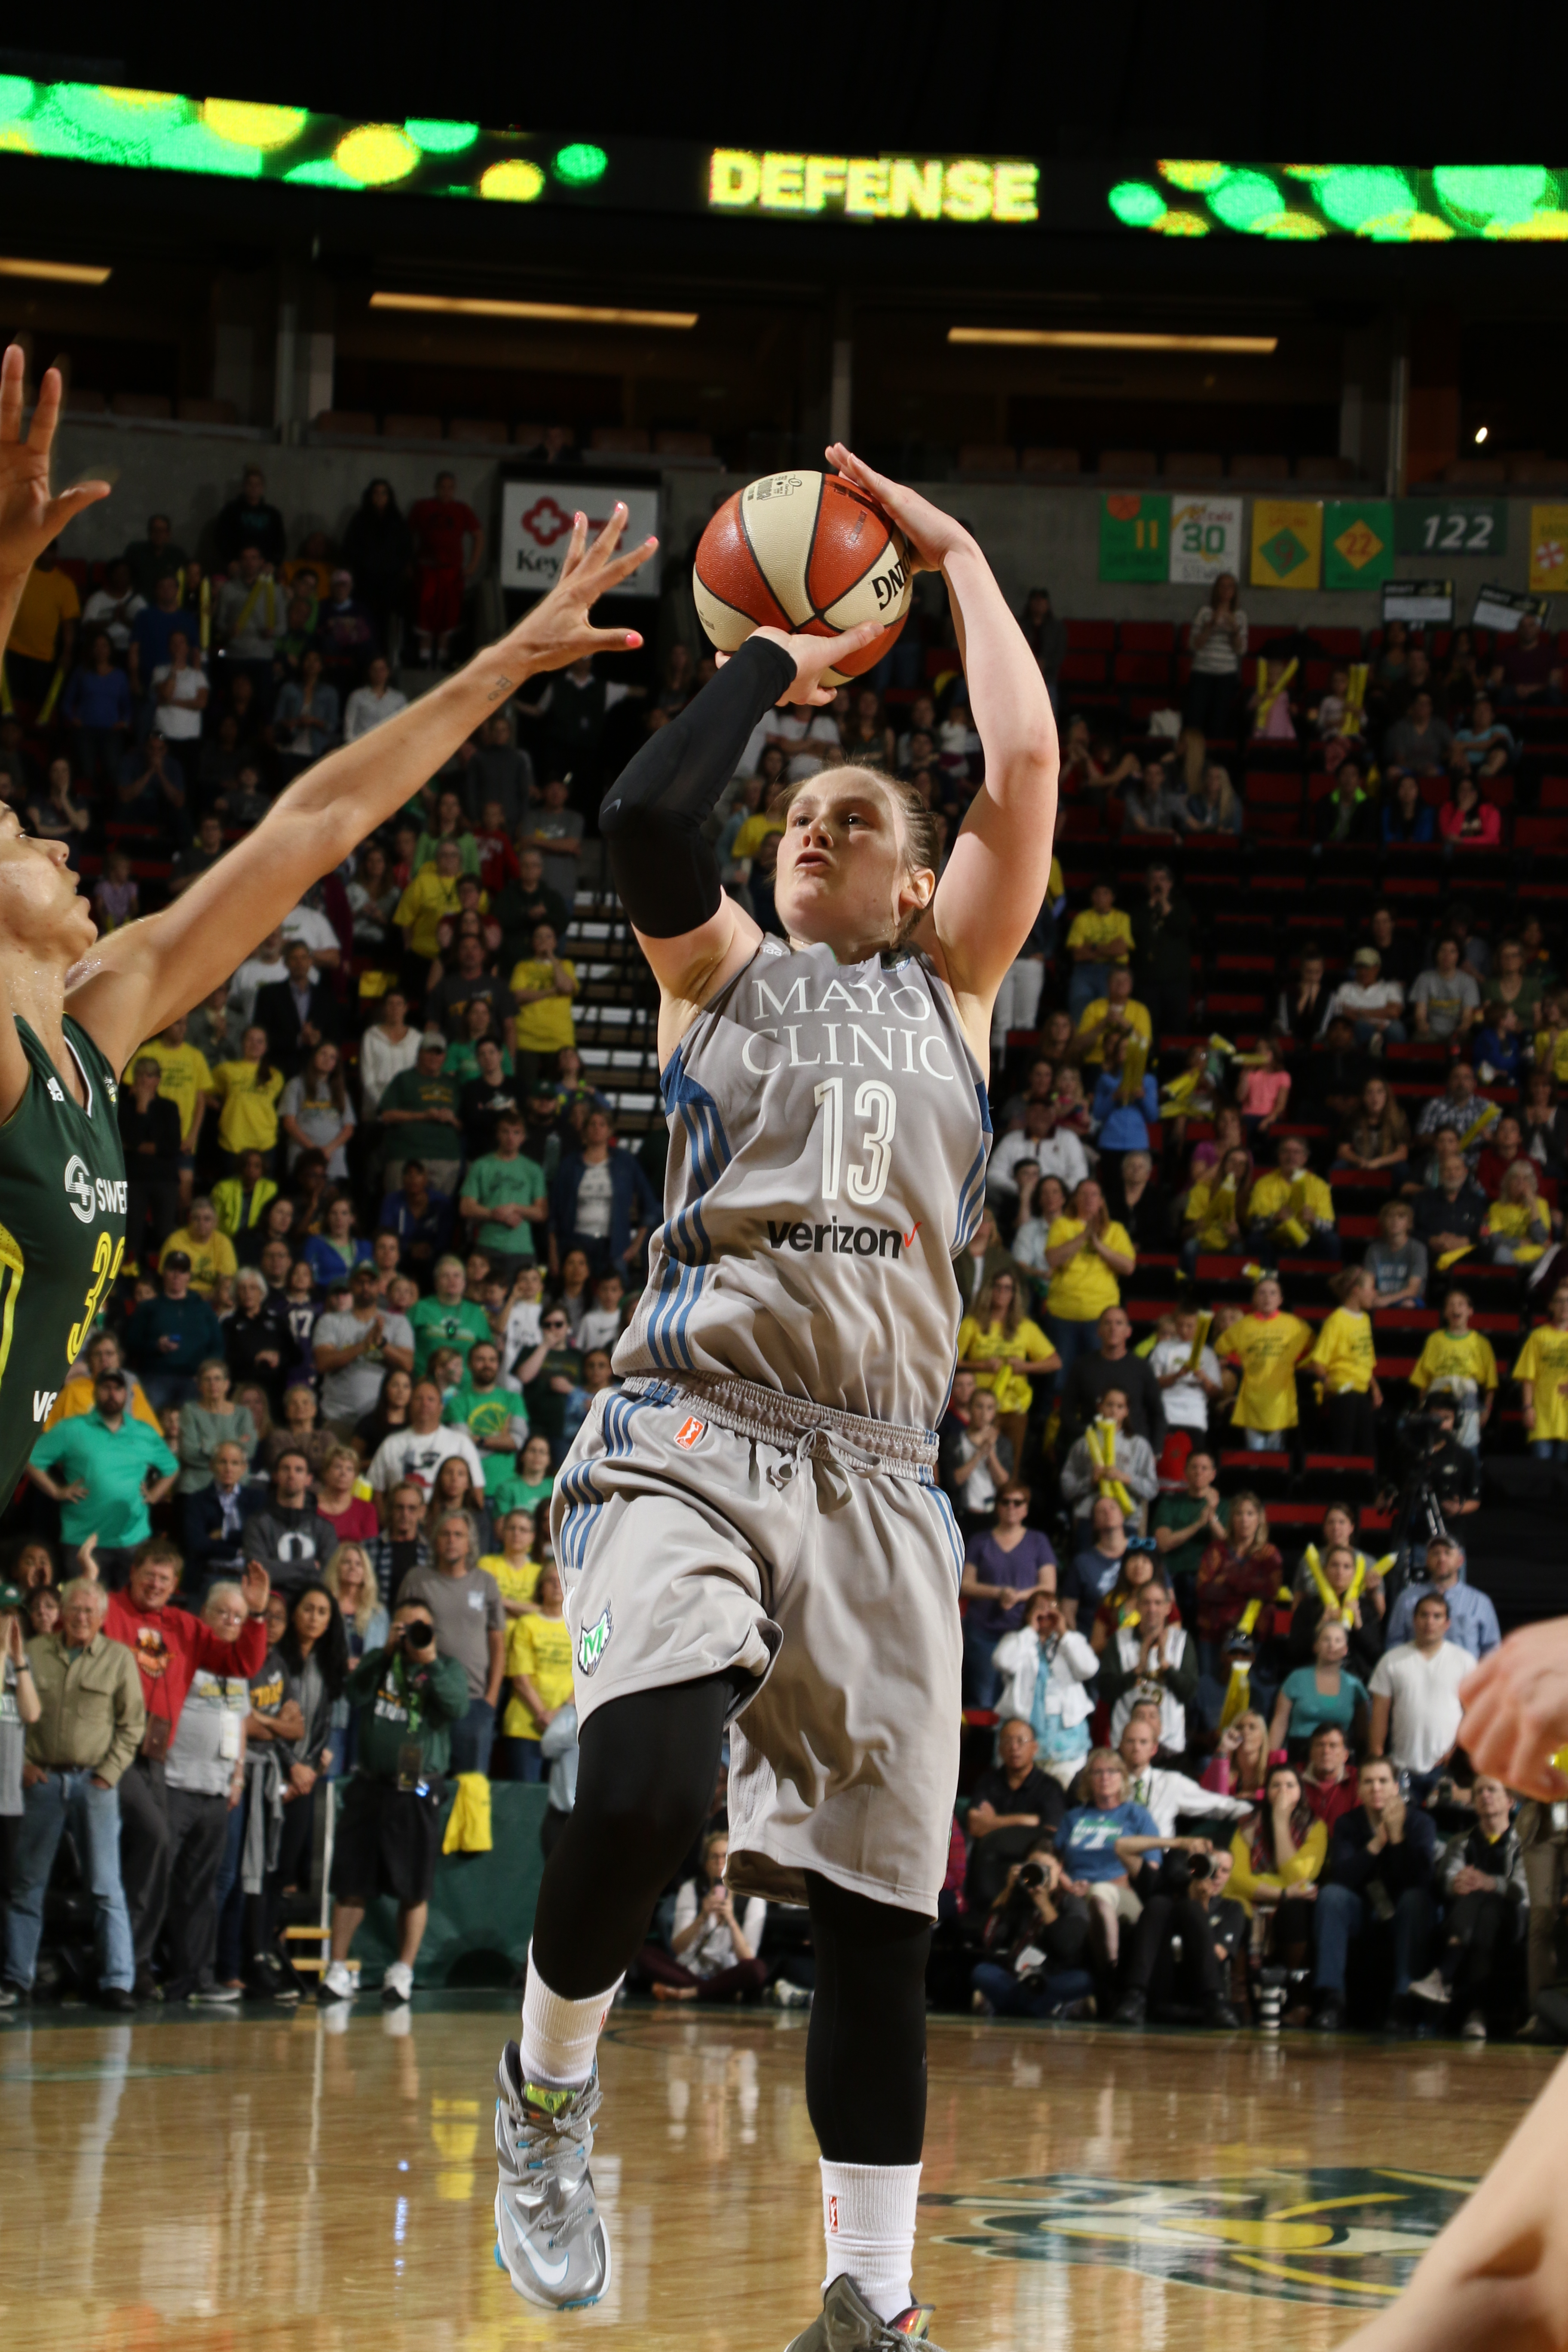 SEATTLE, WA - MAY 22:  Lindsay Whalen #13 of the Minnesota Lynx shoots the ball against the Seattle Storm on May 22, 2016 at KeyArena in Seattle, Washington. NOTE TO USER: User expressly acknowledges and agrees that, by downloading and or using this photograph, user is consenting to the terms and conditions of Getty Images License Agreement. Mandatory Copyright Notice: Copyright 2016 NBAE (Photo by Josh Huston/NBAE via Getty Images)